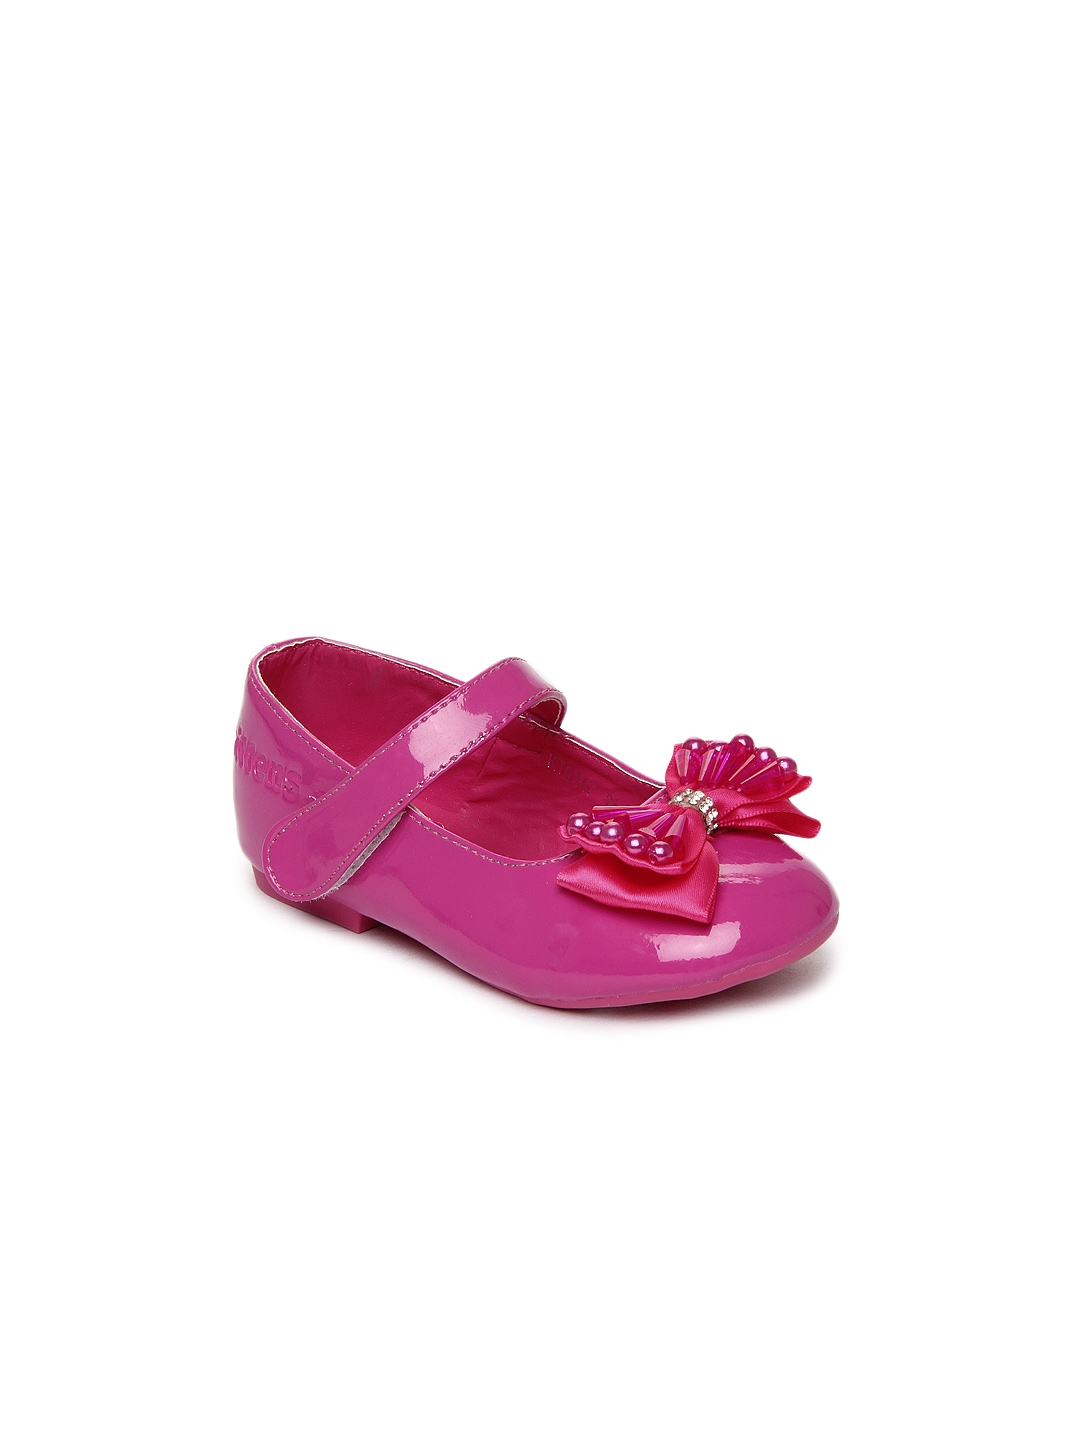 flat shoes for girls - photo #19